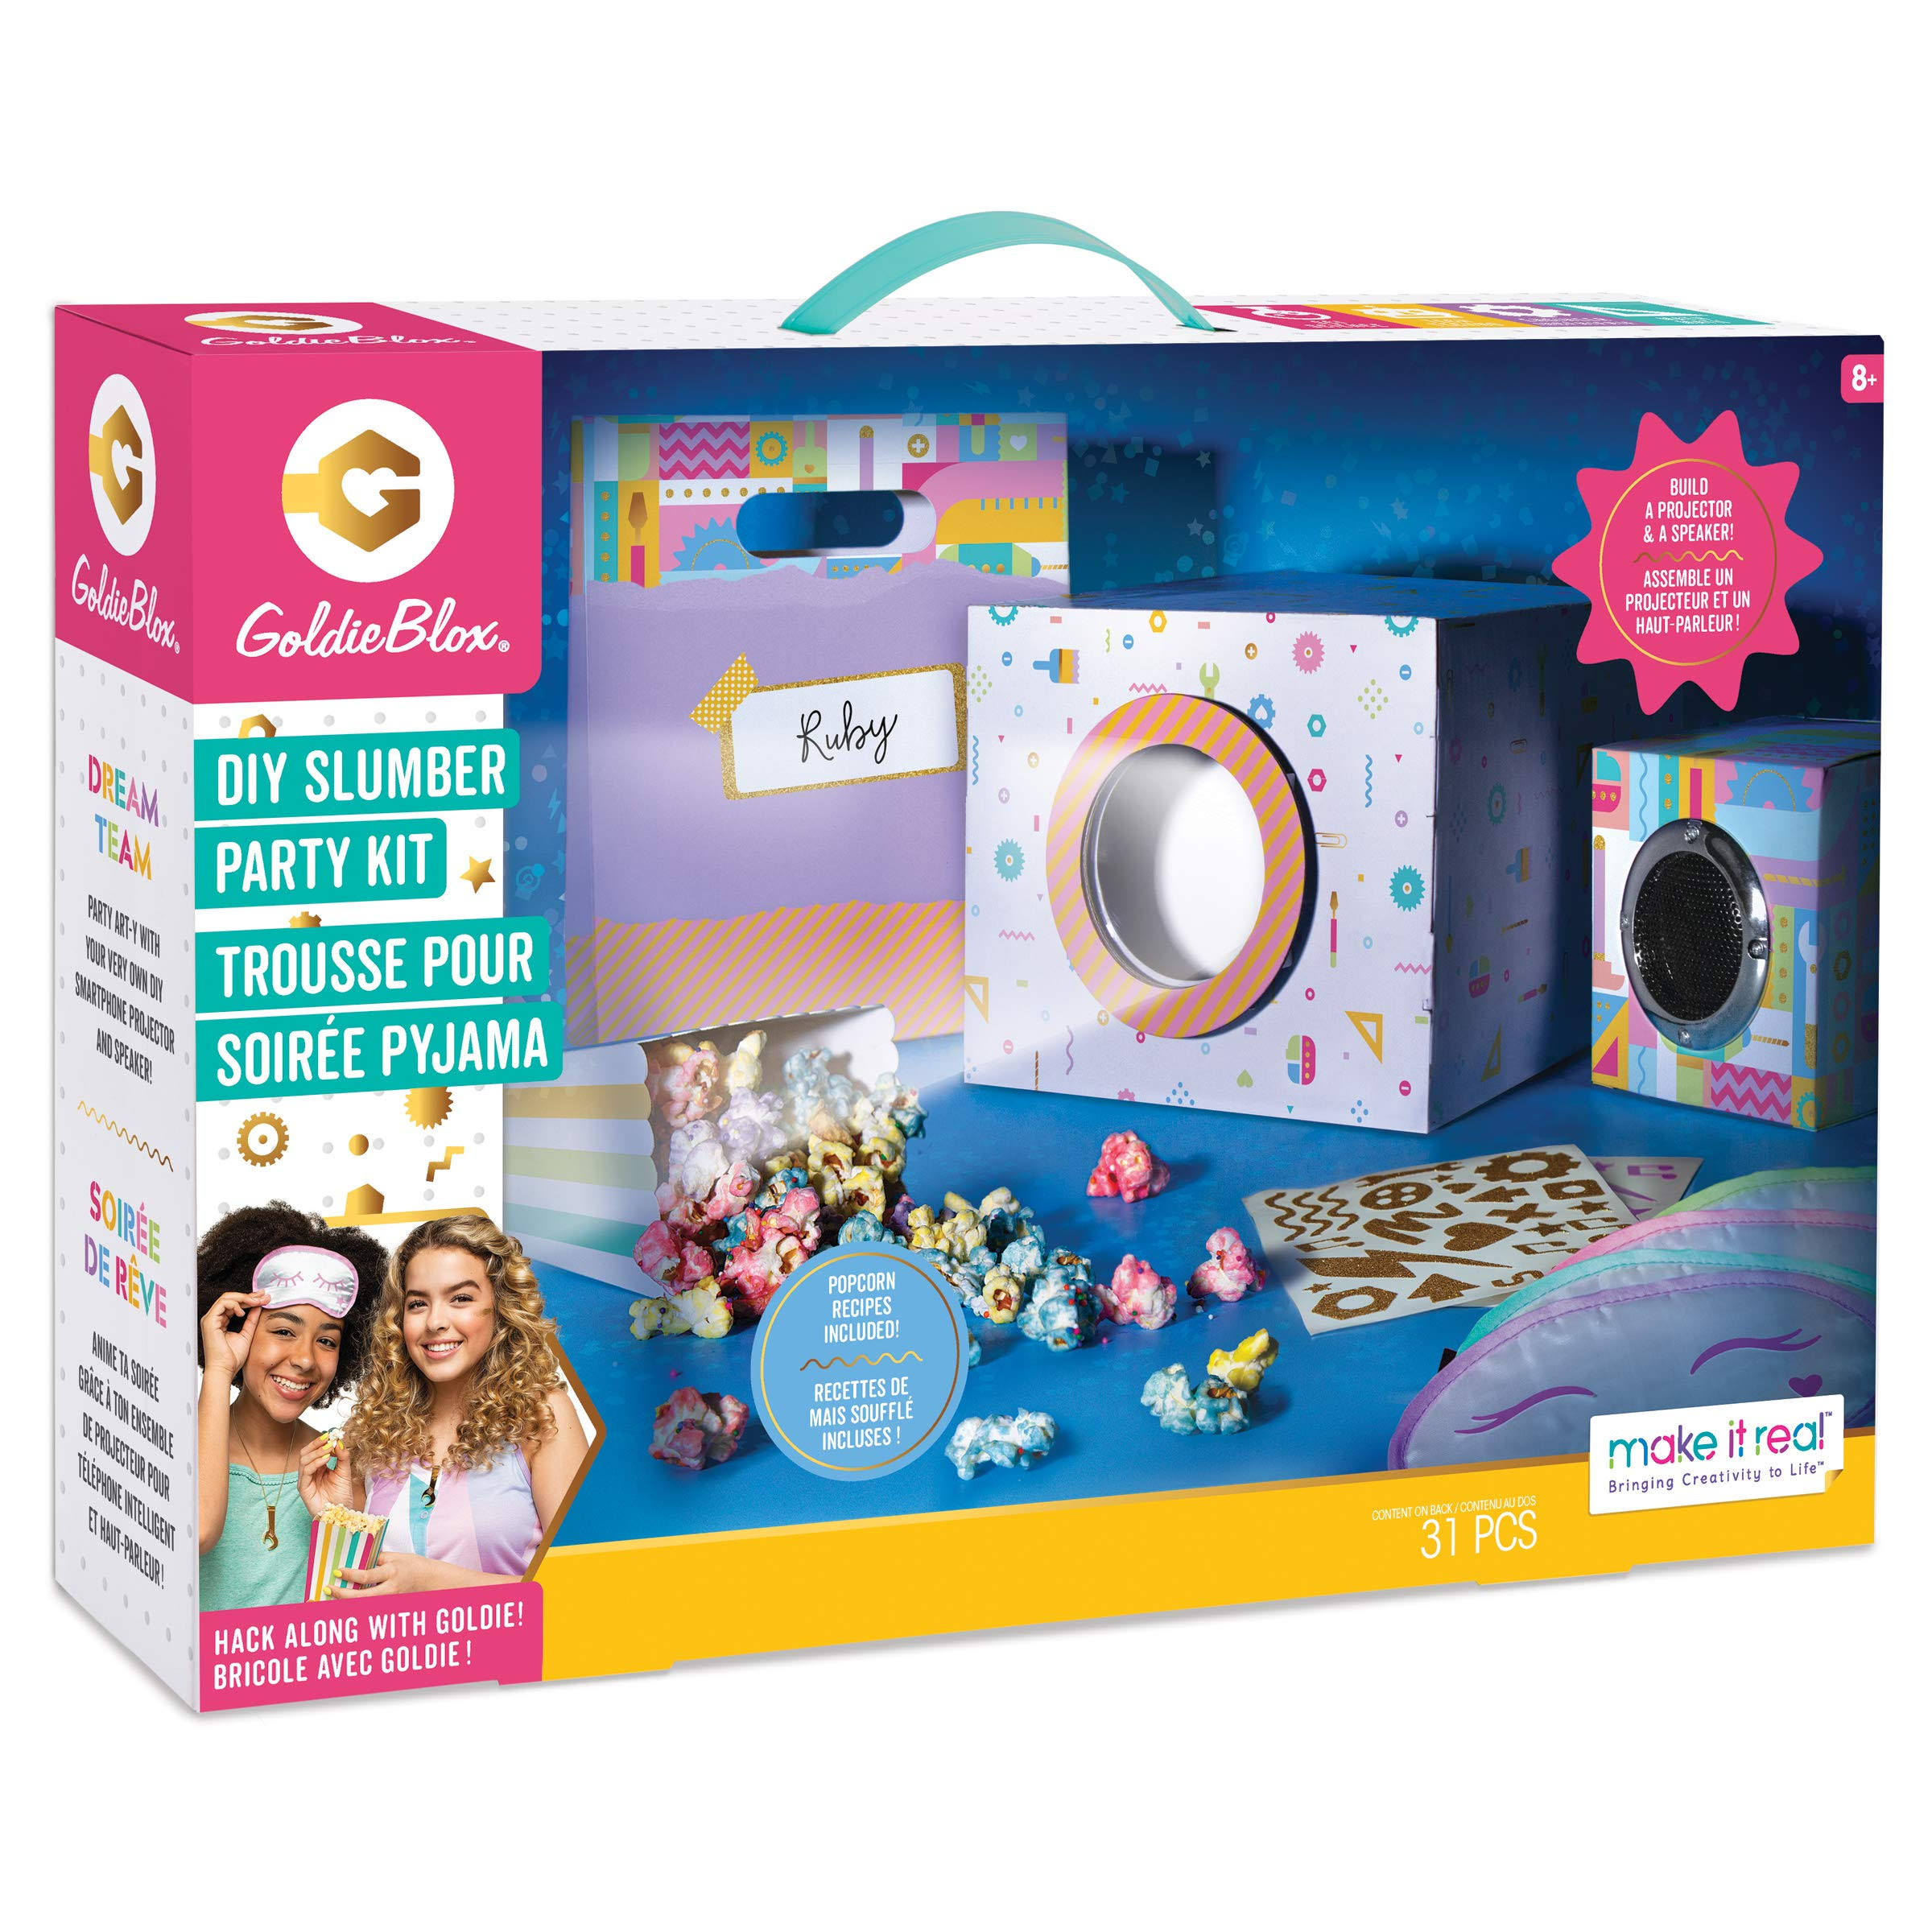 GoldieBlox DIY Slumber Party Kit